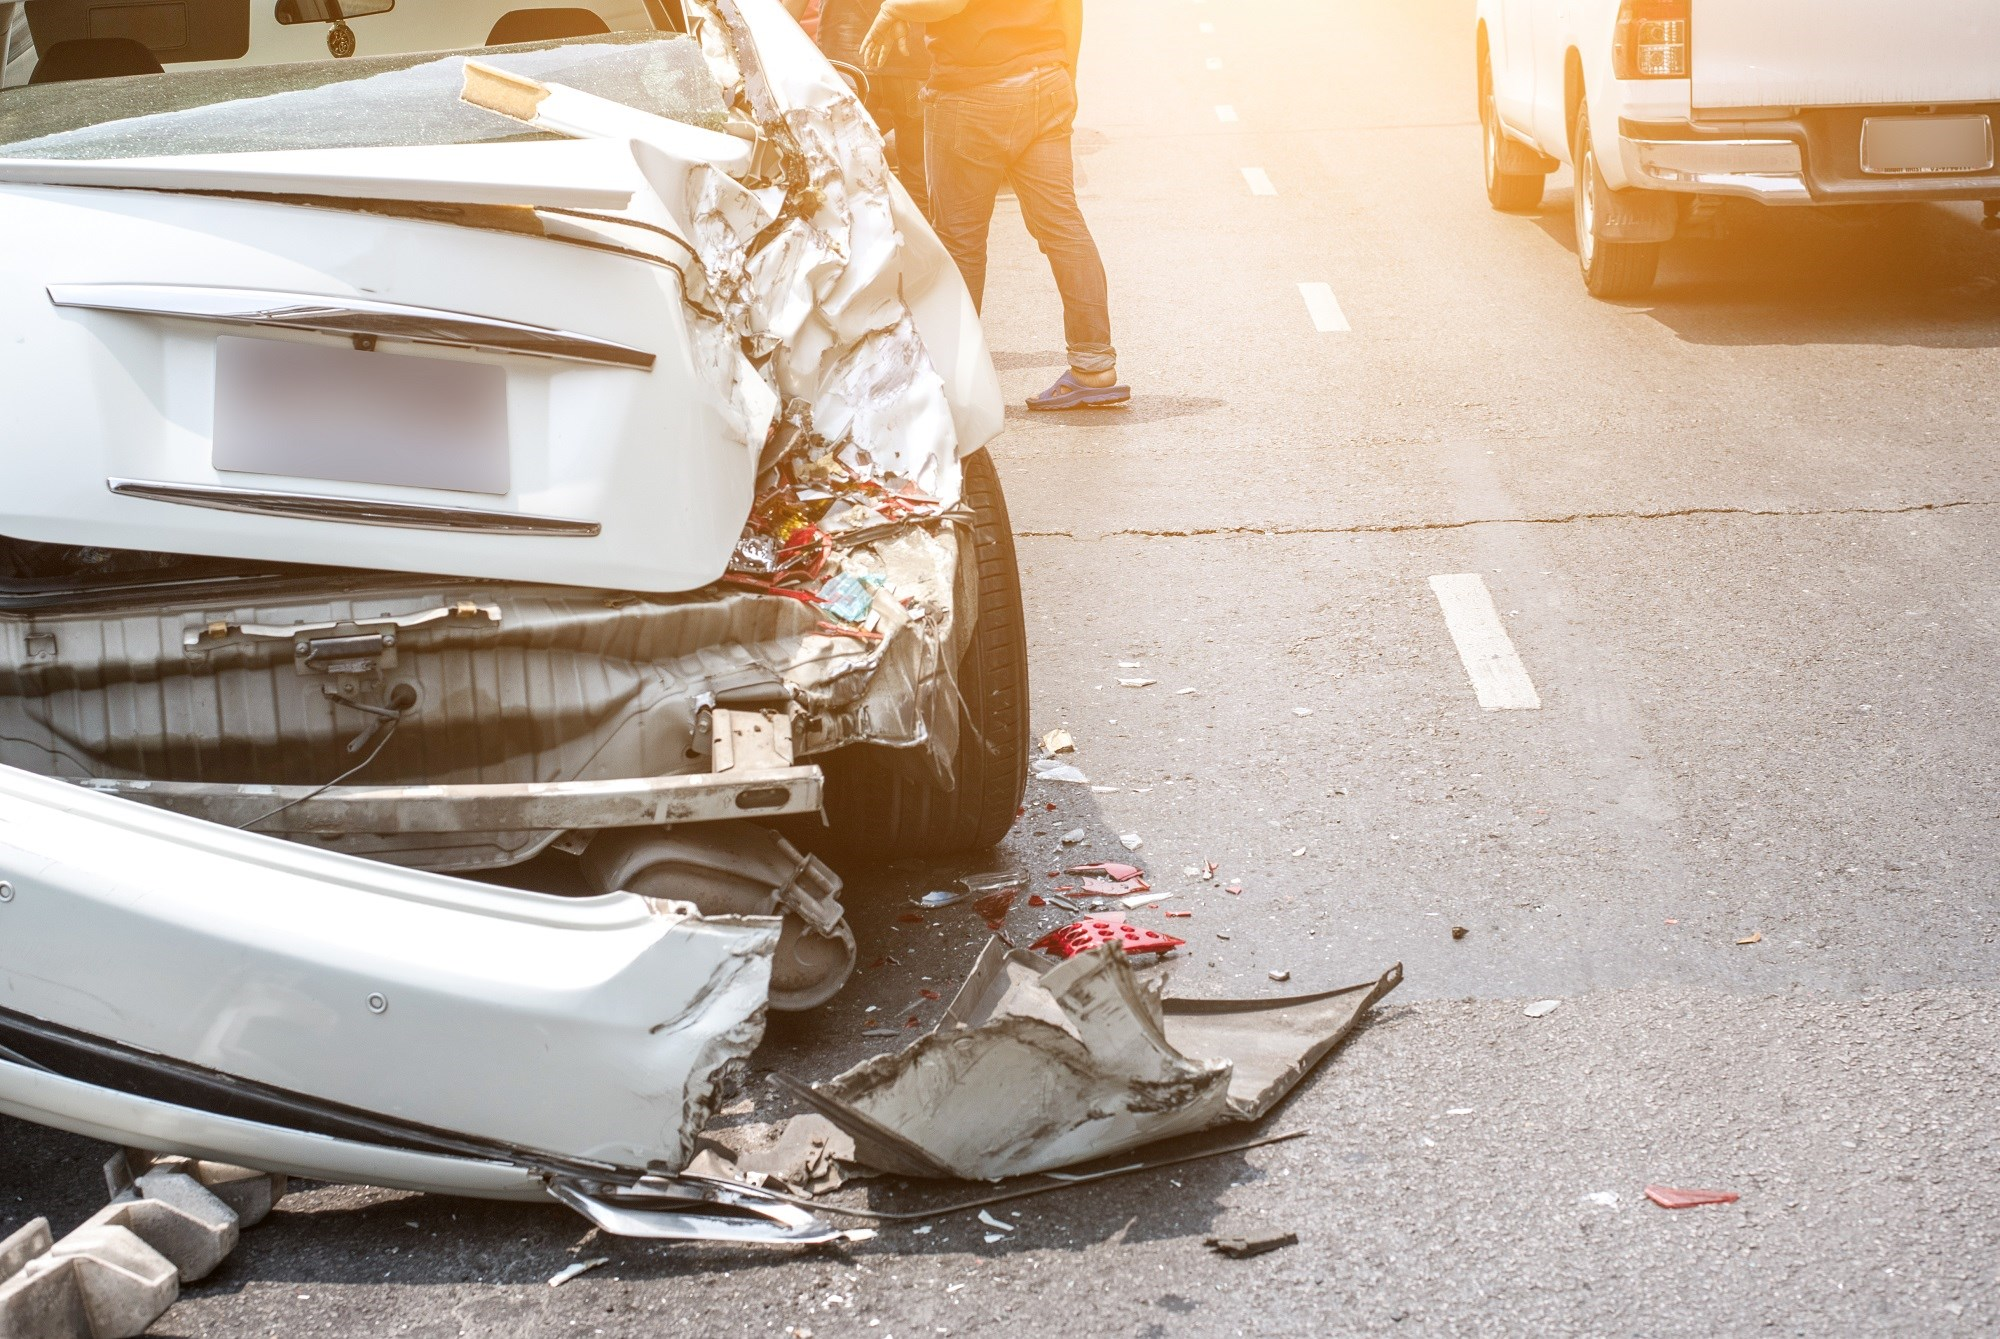 Health Professionals Have Role in Warning About Impaired Driving